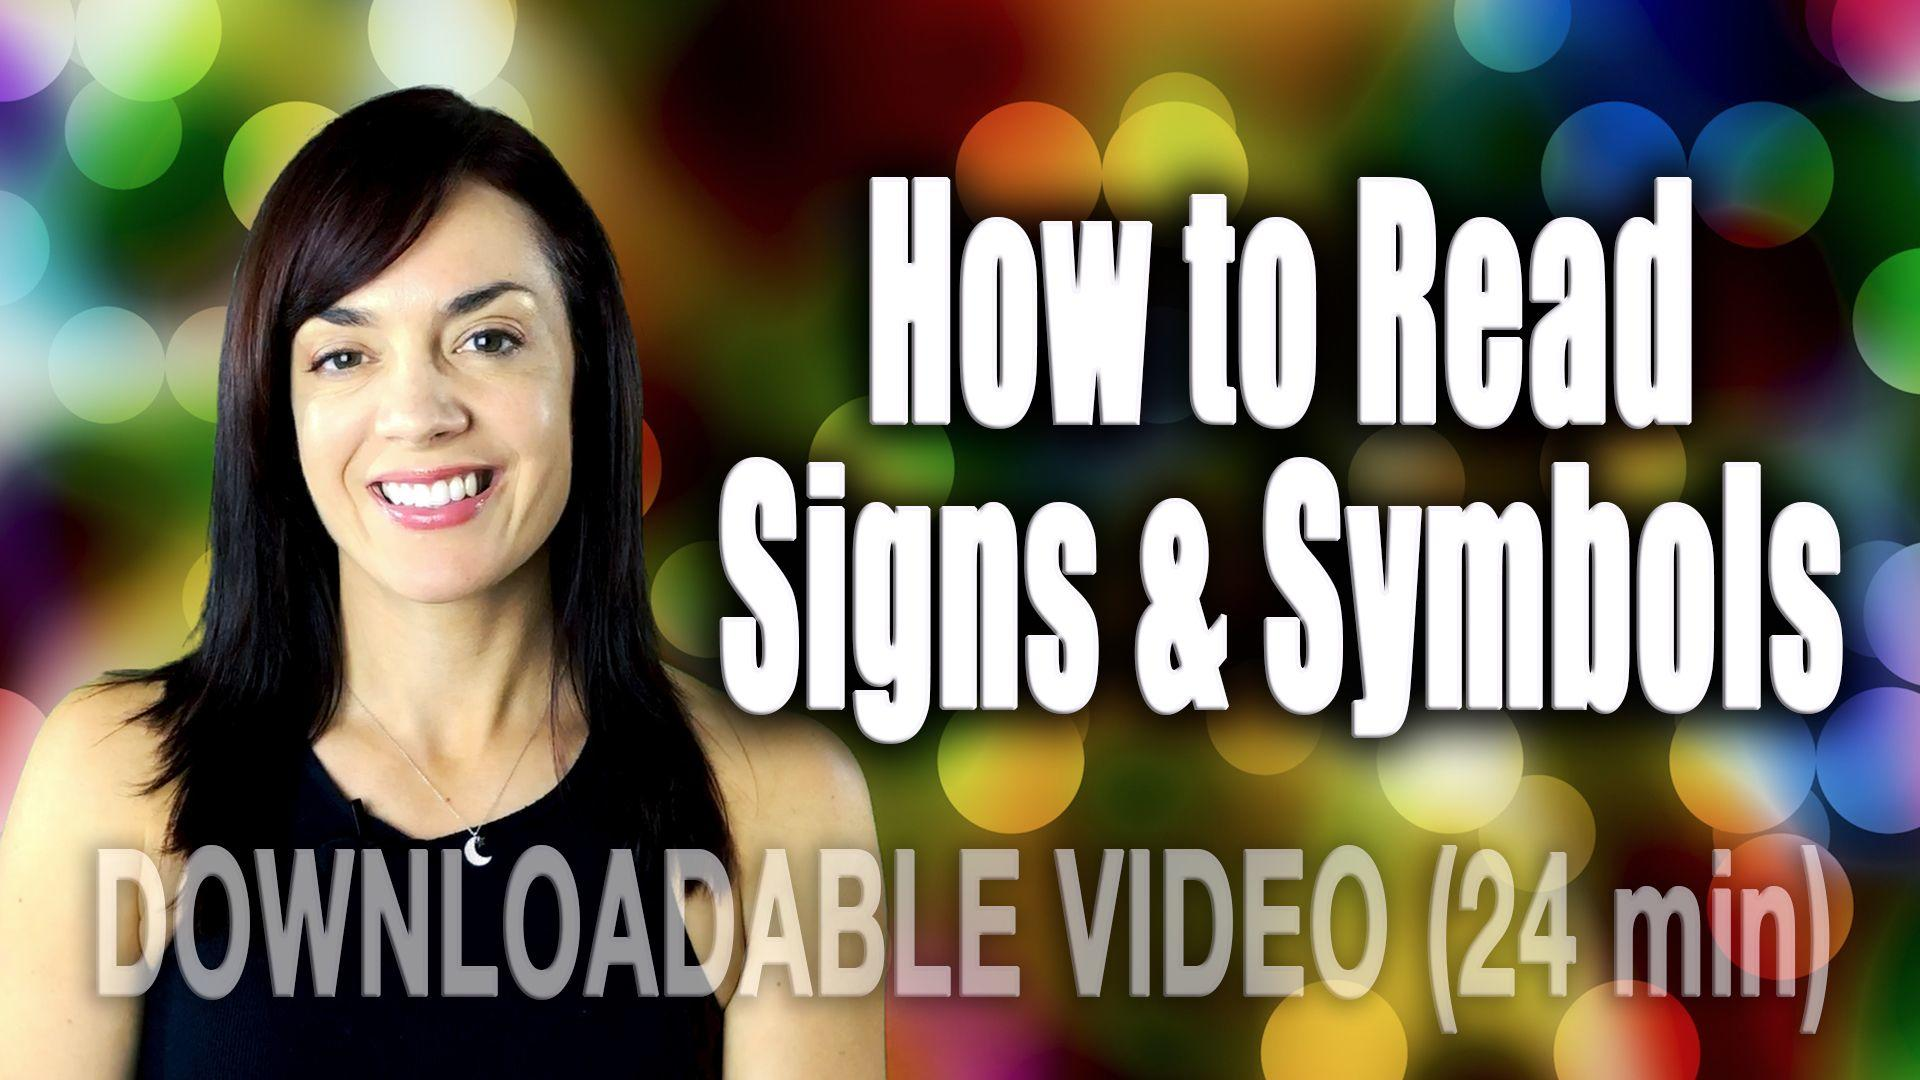 How to read signs 82